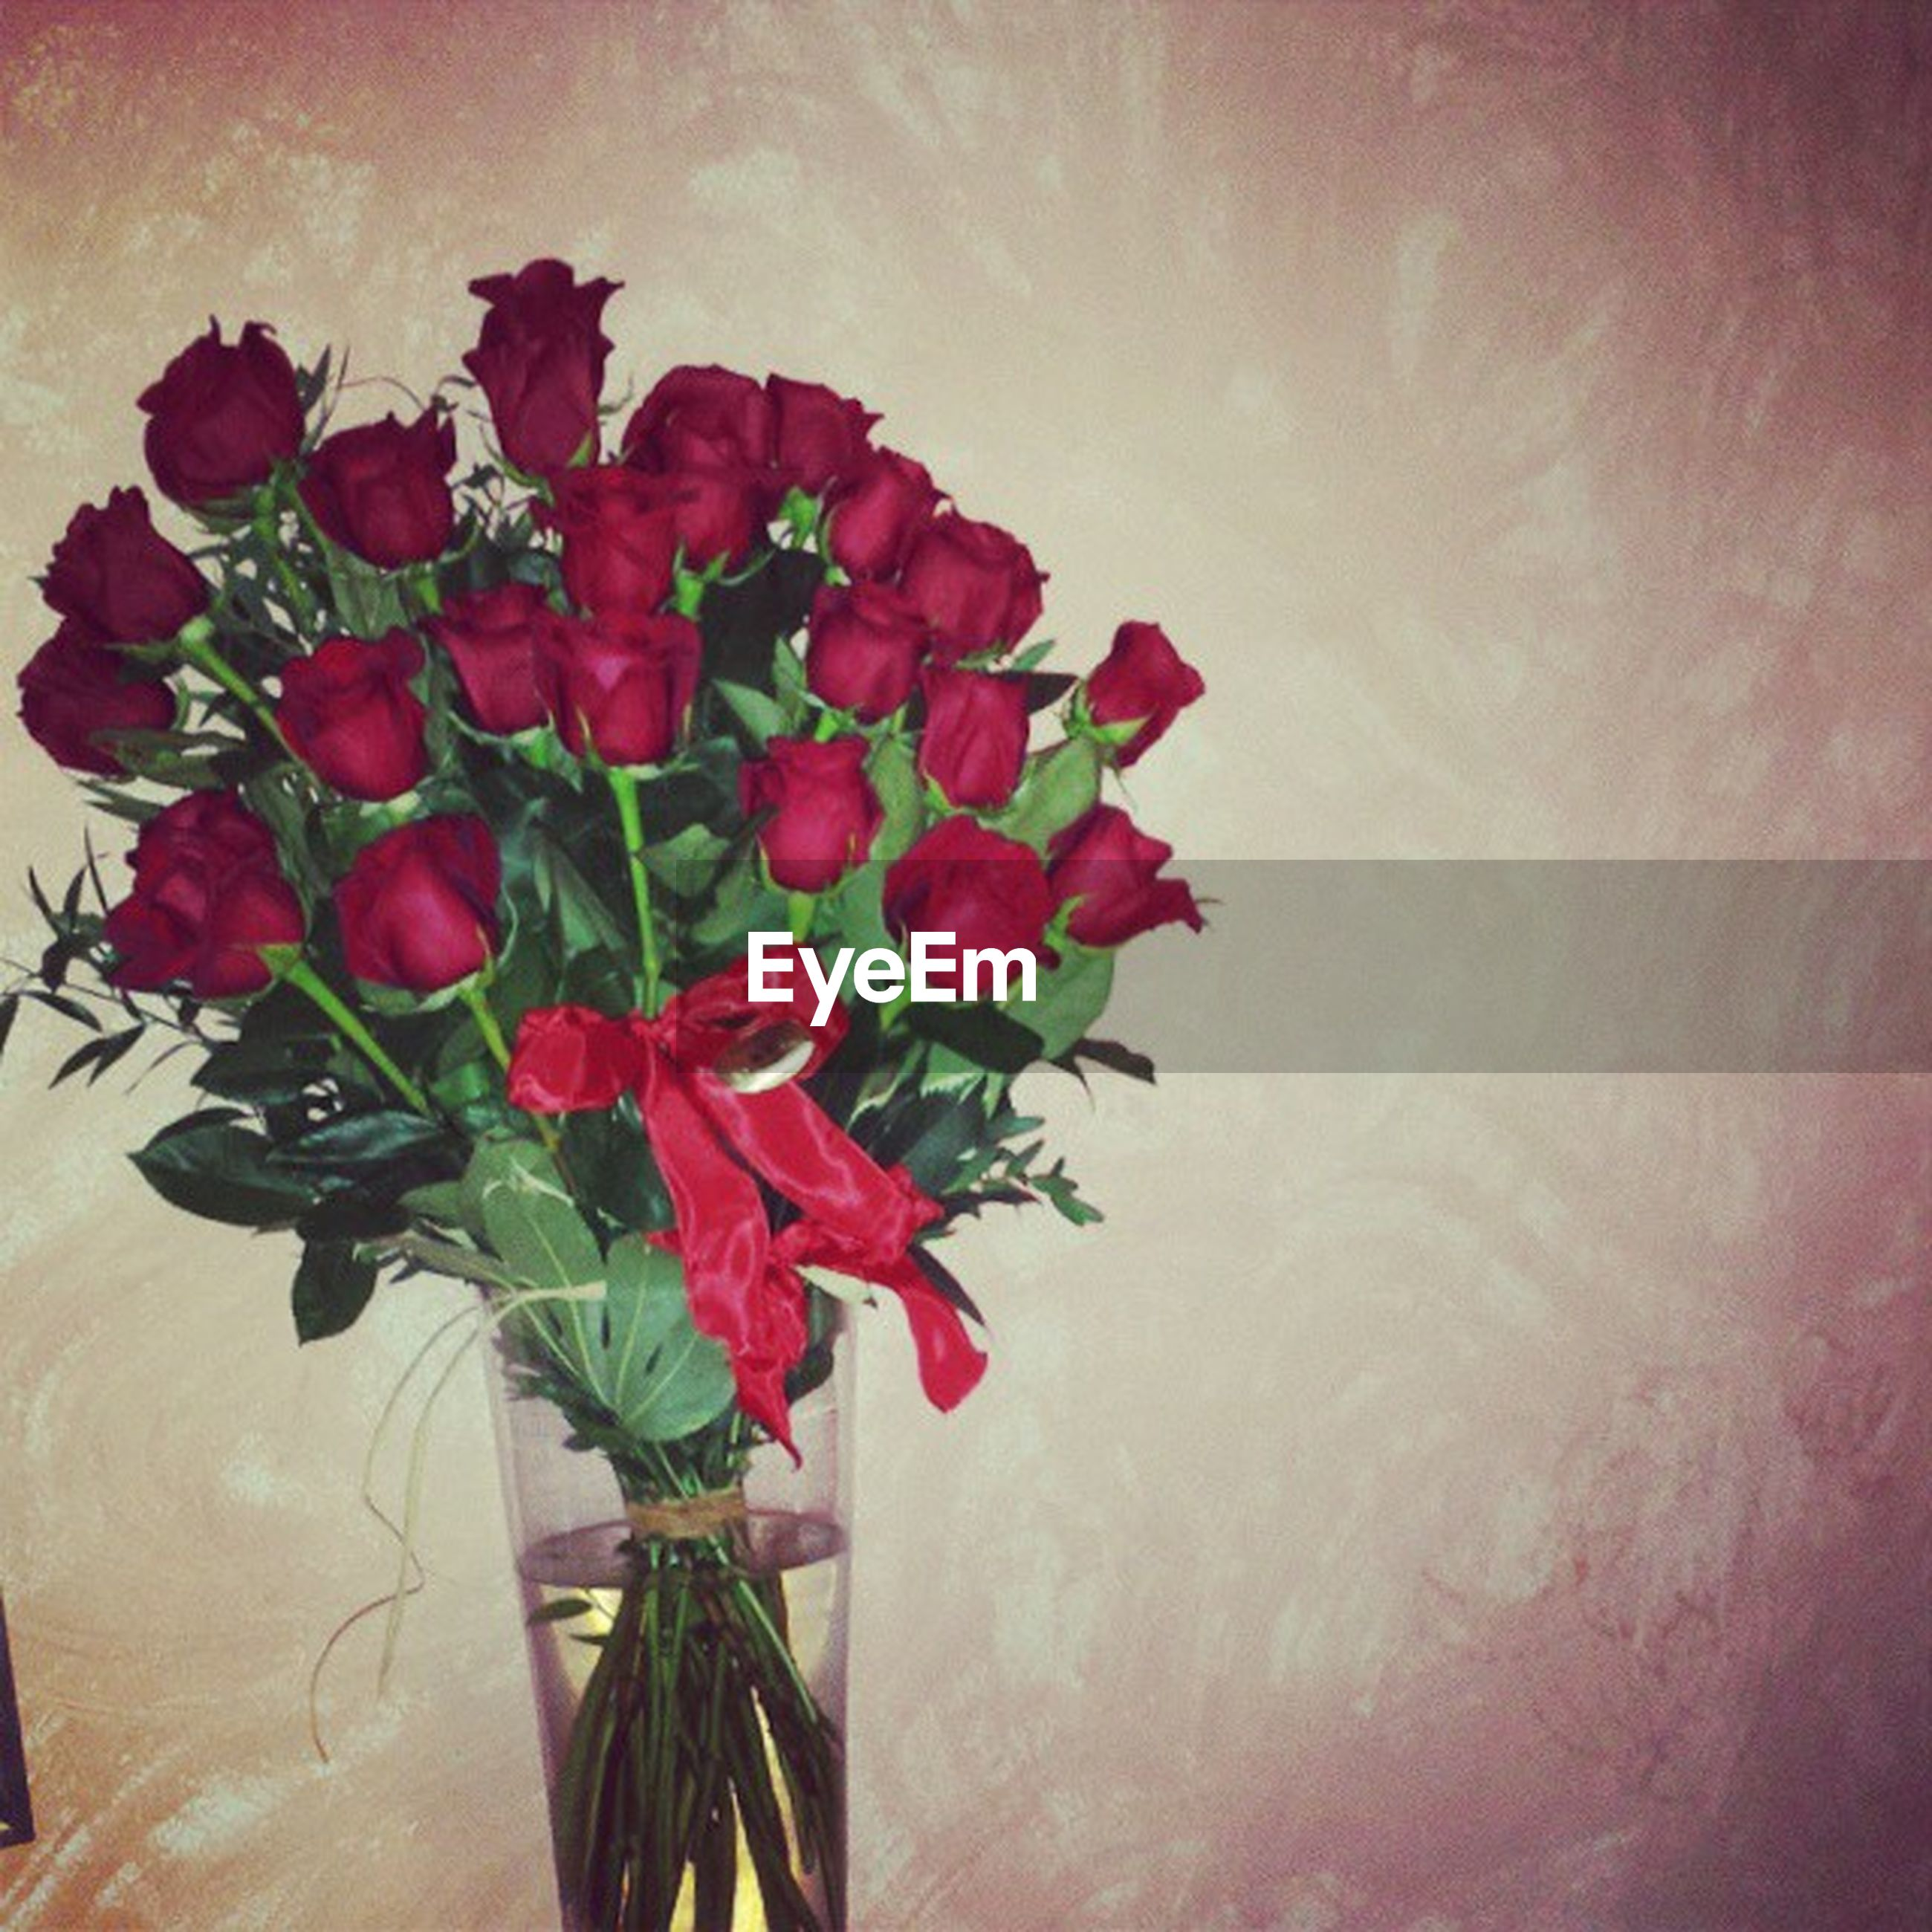 flower, freshness, indoors, petal, fragility, red, beauty in nature, flower head, wall - building feature, vase, plant, nature, growth, rose - flower, decoration, table, close-up, bunch of flowers, bouquet, stem